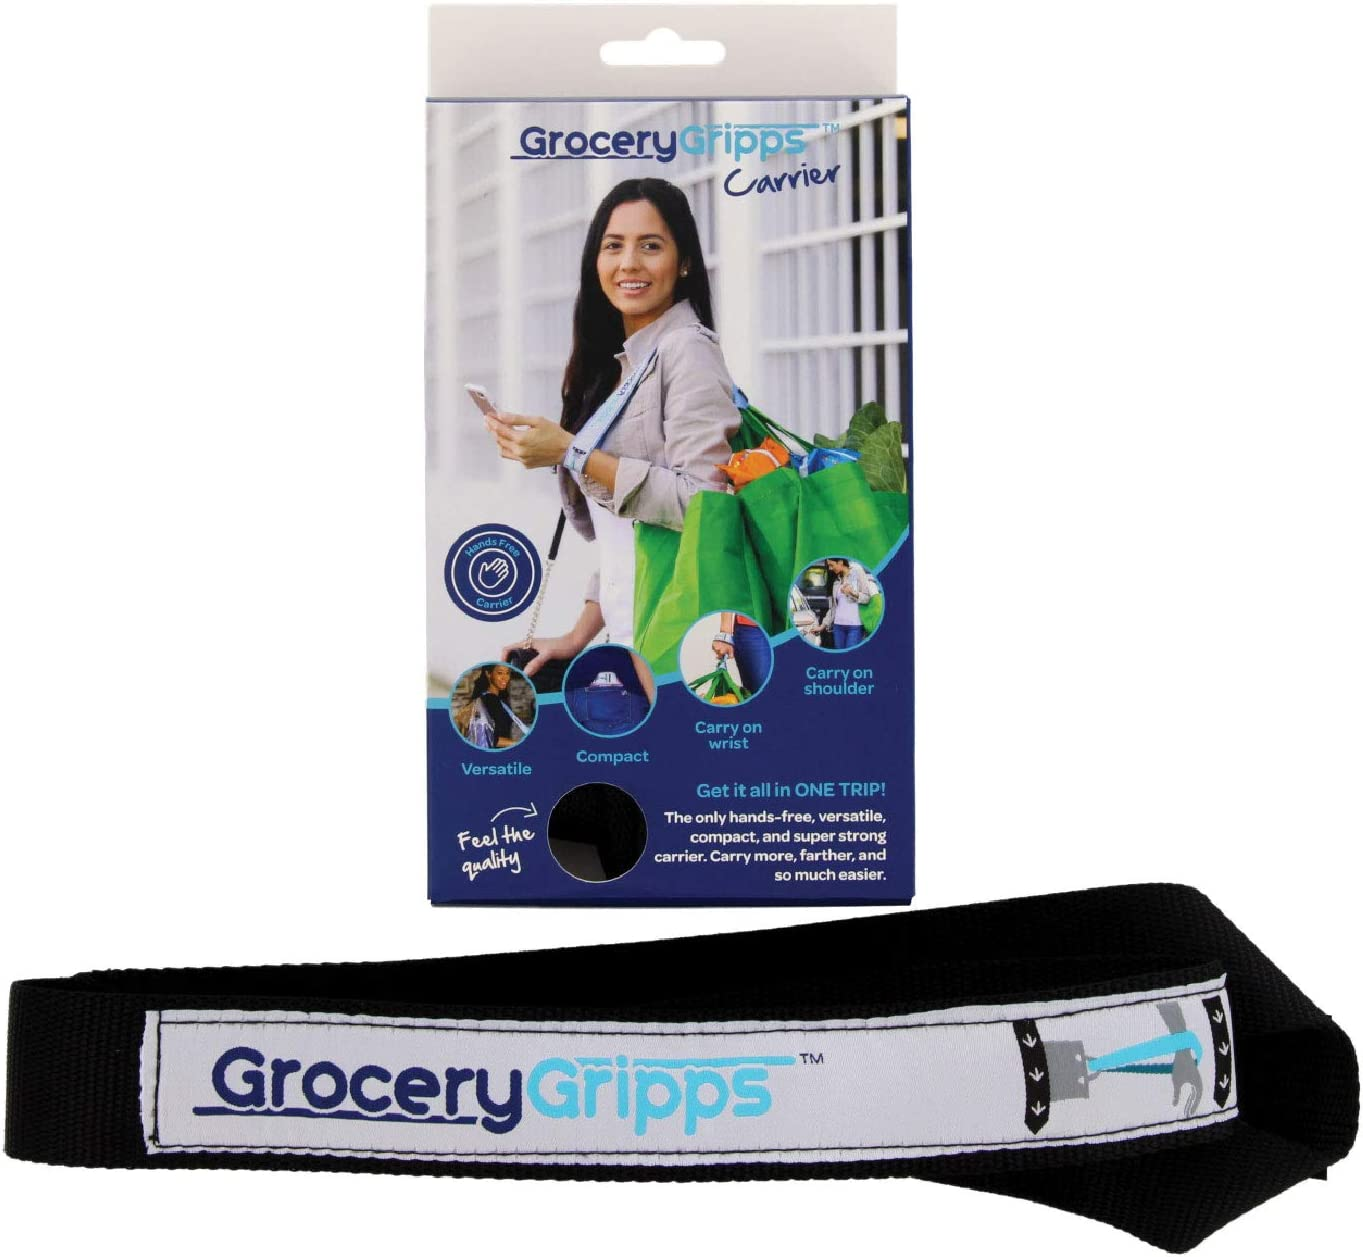 Grocery Gripps Carrier – The Ultimate Hands-Free Grocery Bag Carrier Strap, Carry Multiple Bags At Once – Compact, Easy to Use, Super Strong – Carry Shopping On Your Shoulder / Wrist – Black